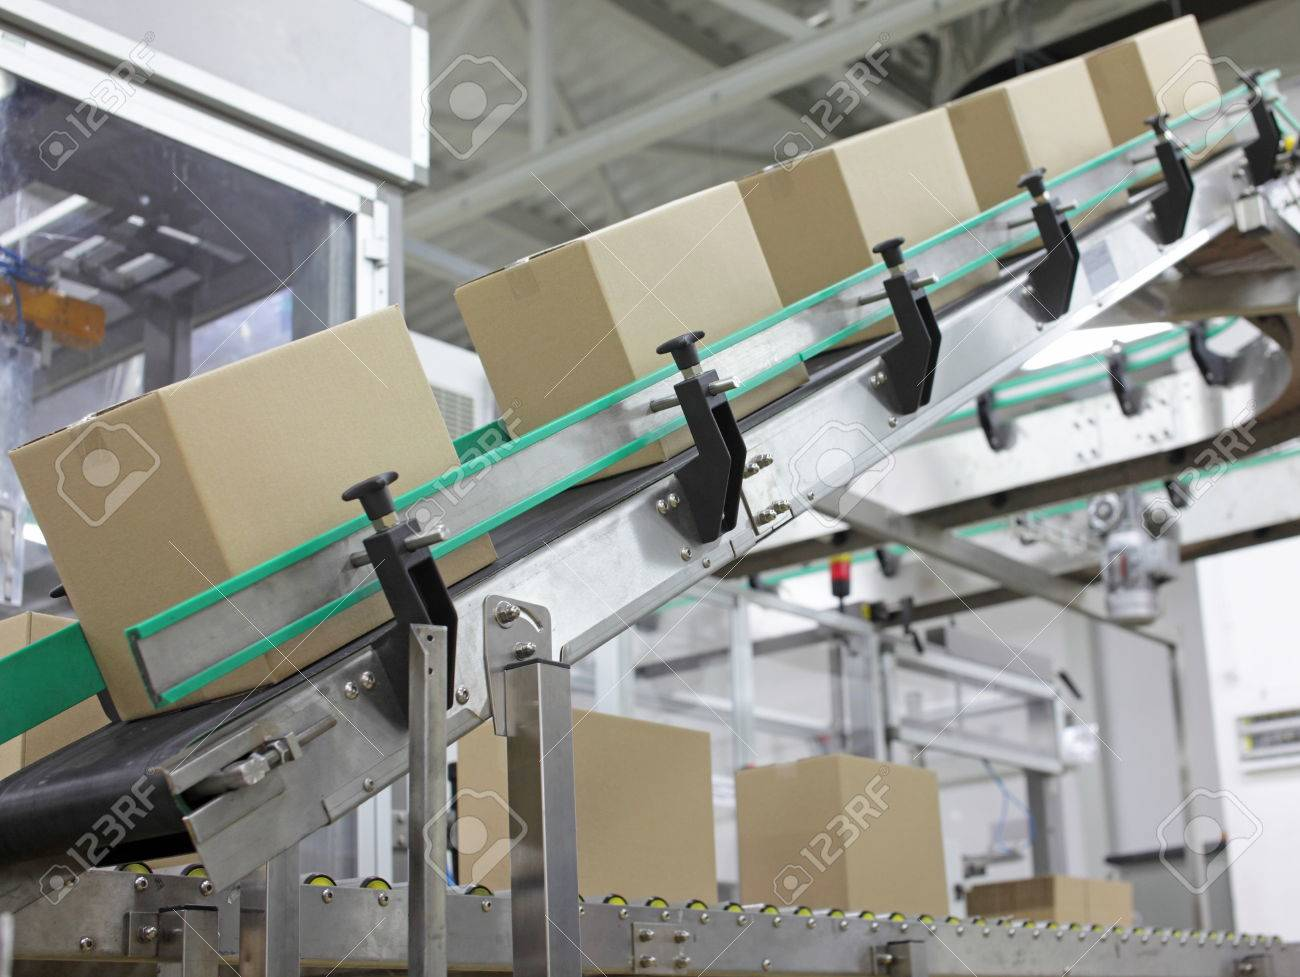 Automation - Cardboard boxes on conveyor belt in factory - 75780466